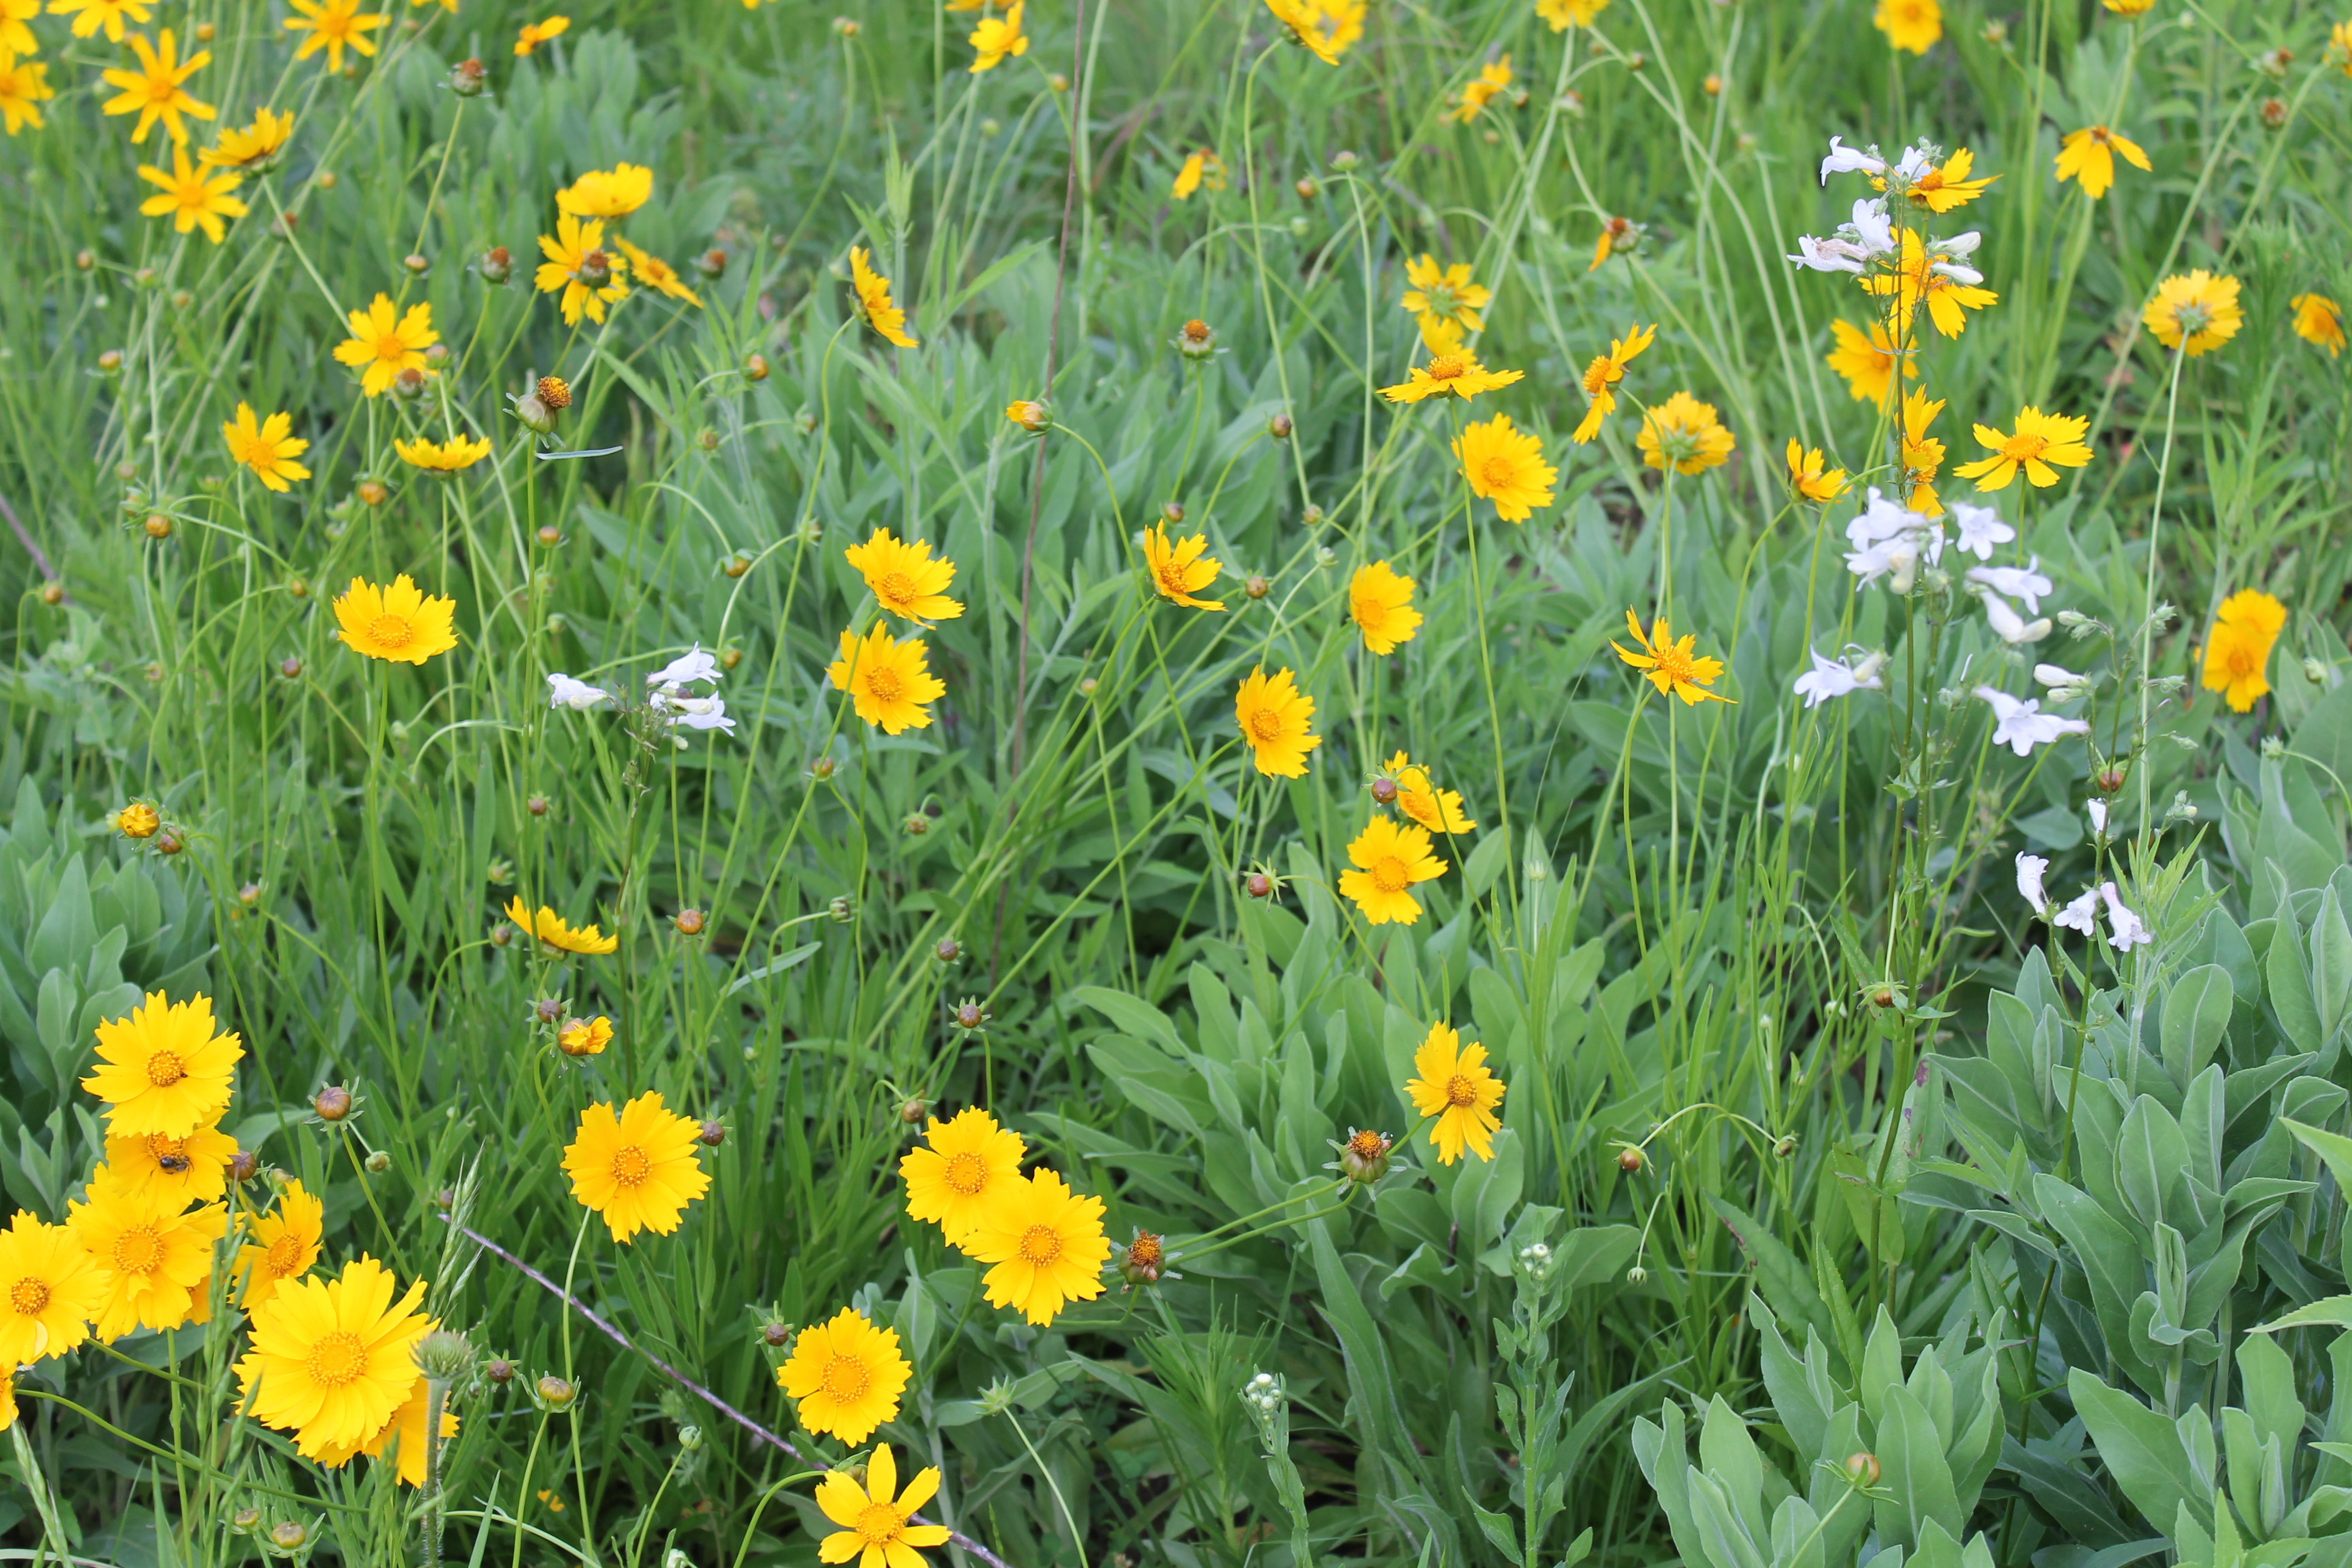 Plants pearl creek farm page 2 beardtongue white and coreopsis yellow flowers bloom in may mightylinksfo